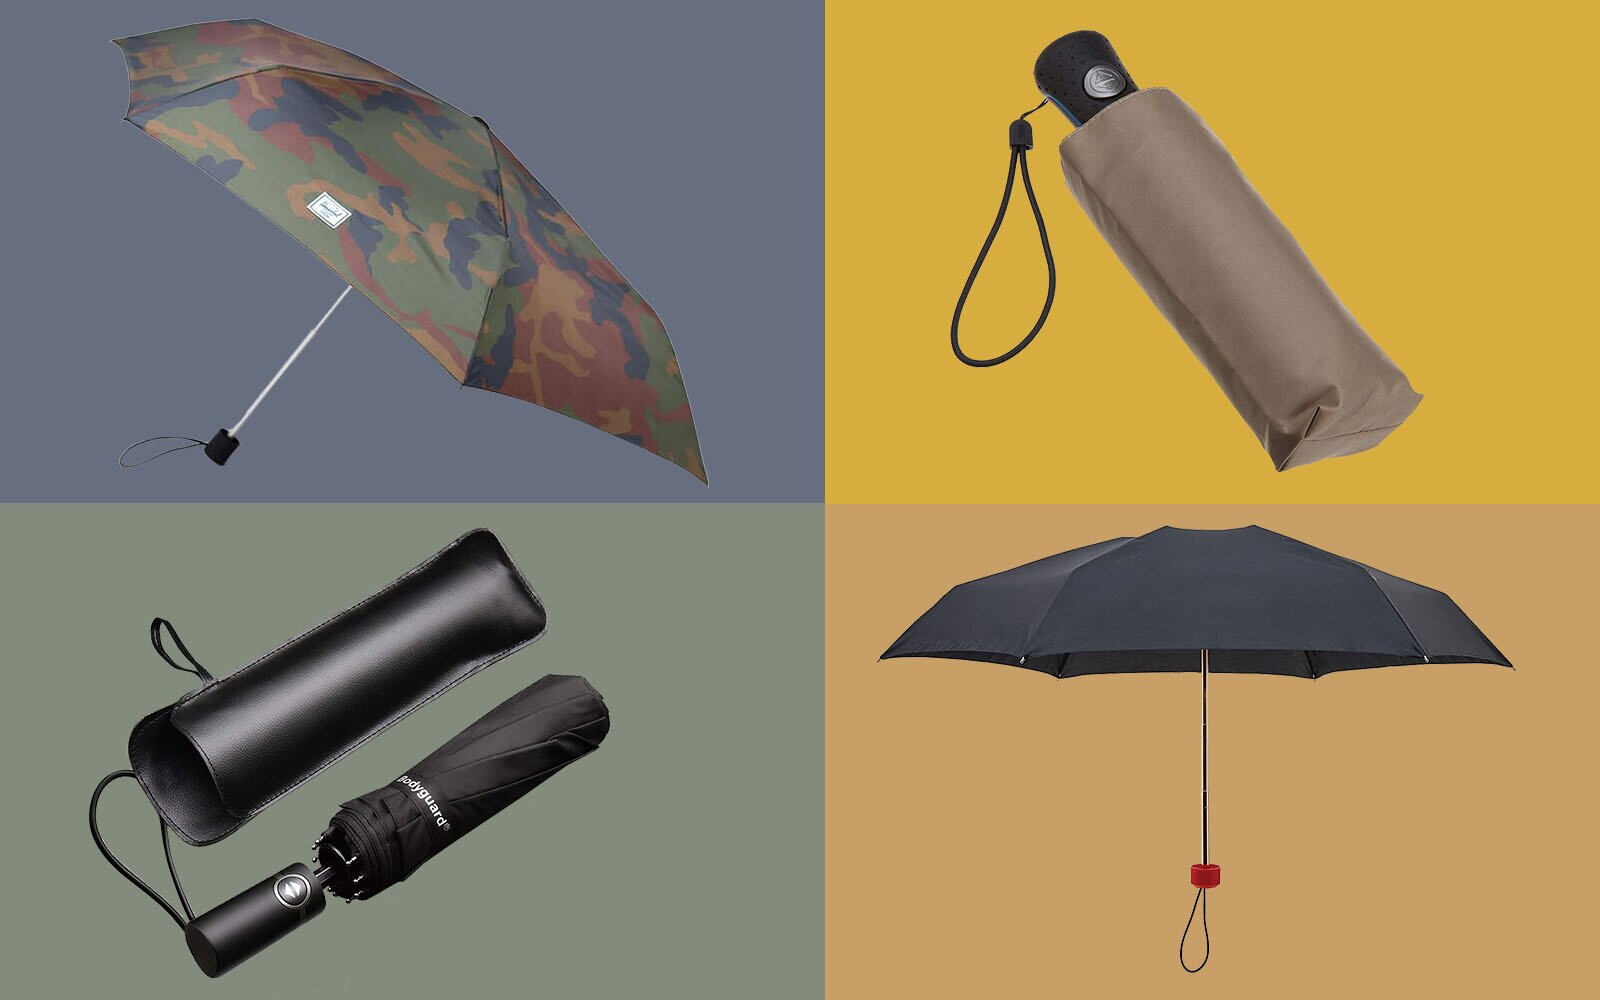 The Best Travel Umbrellas That Fit In